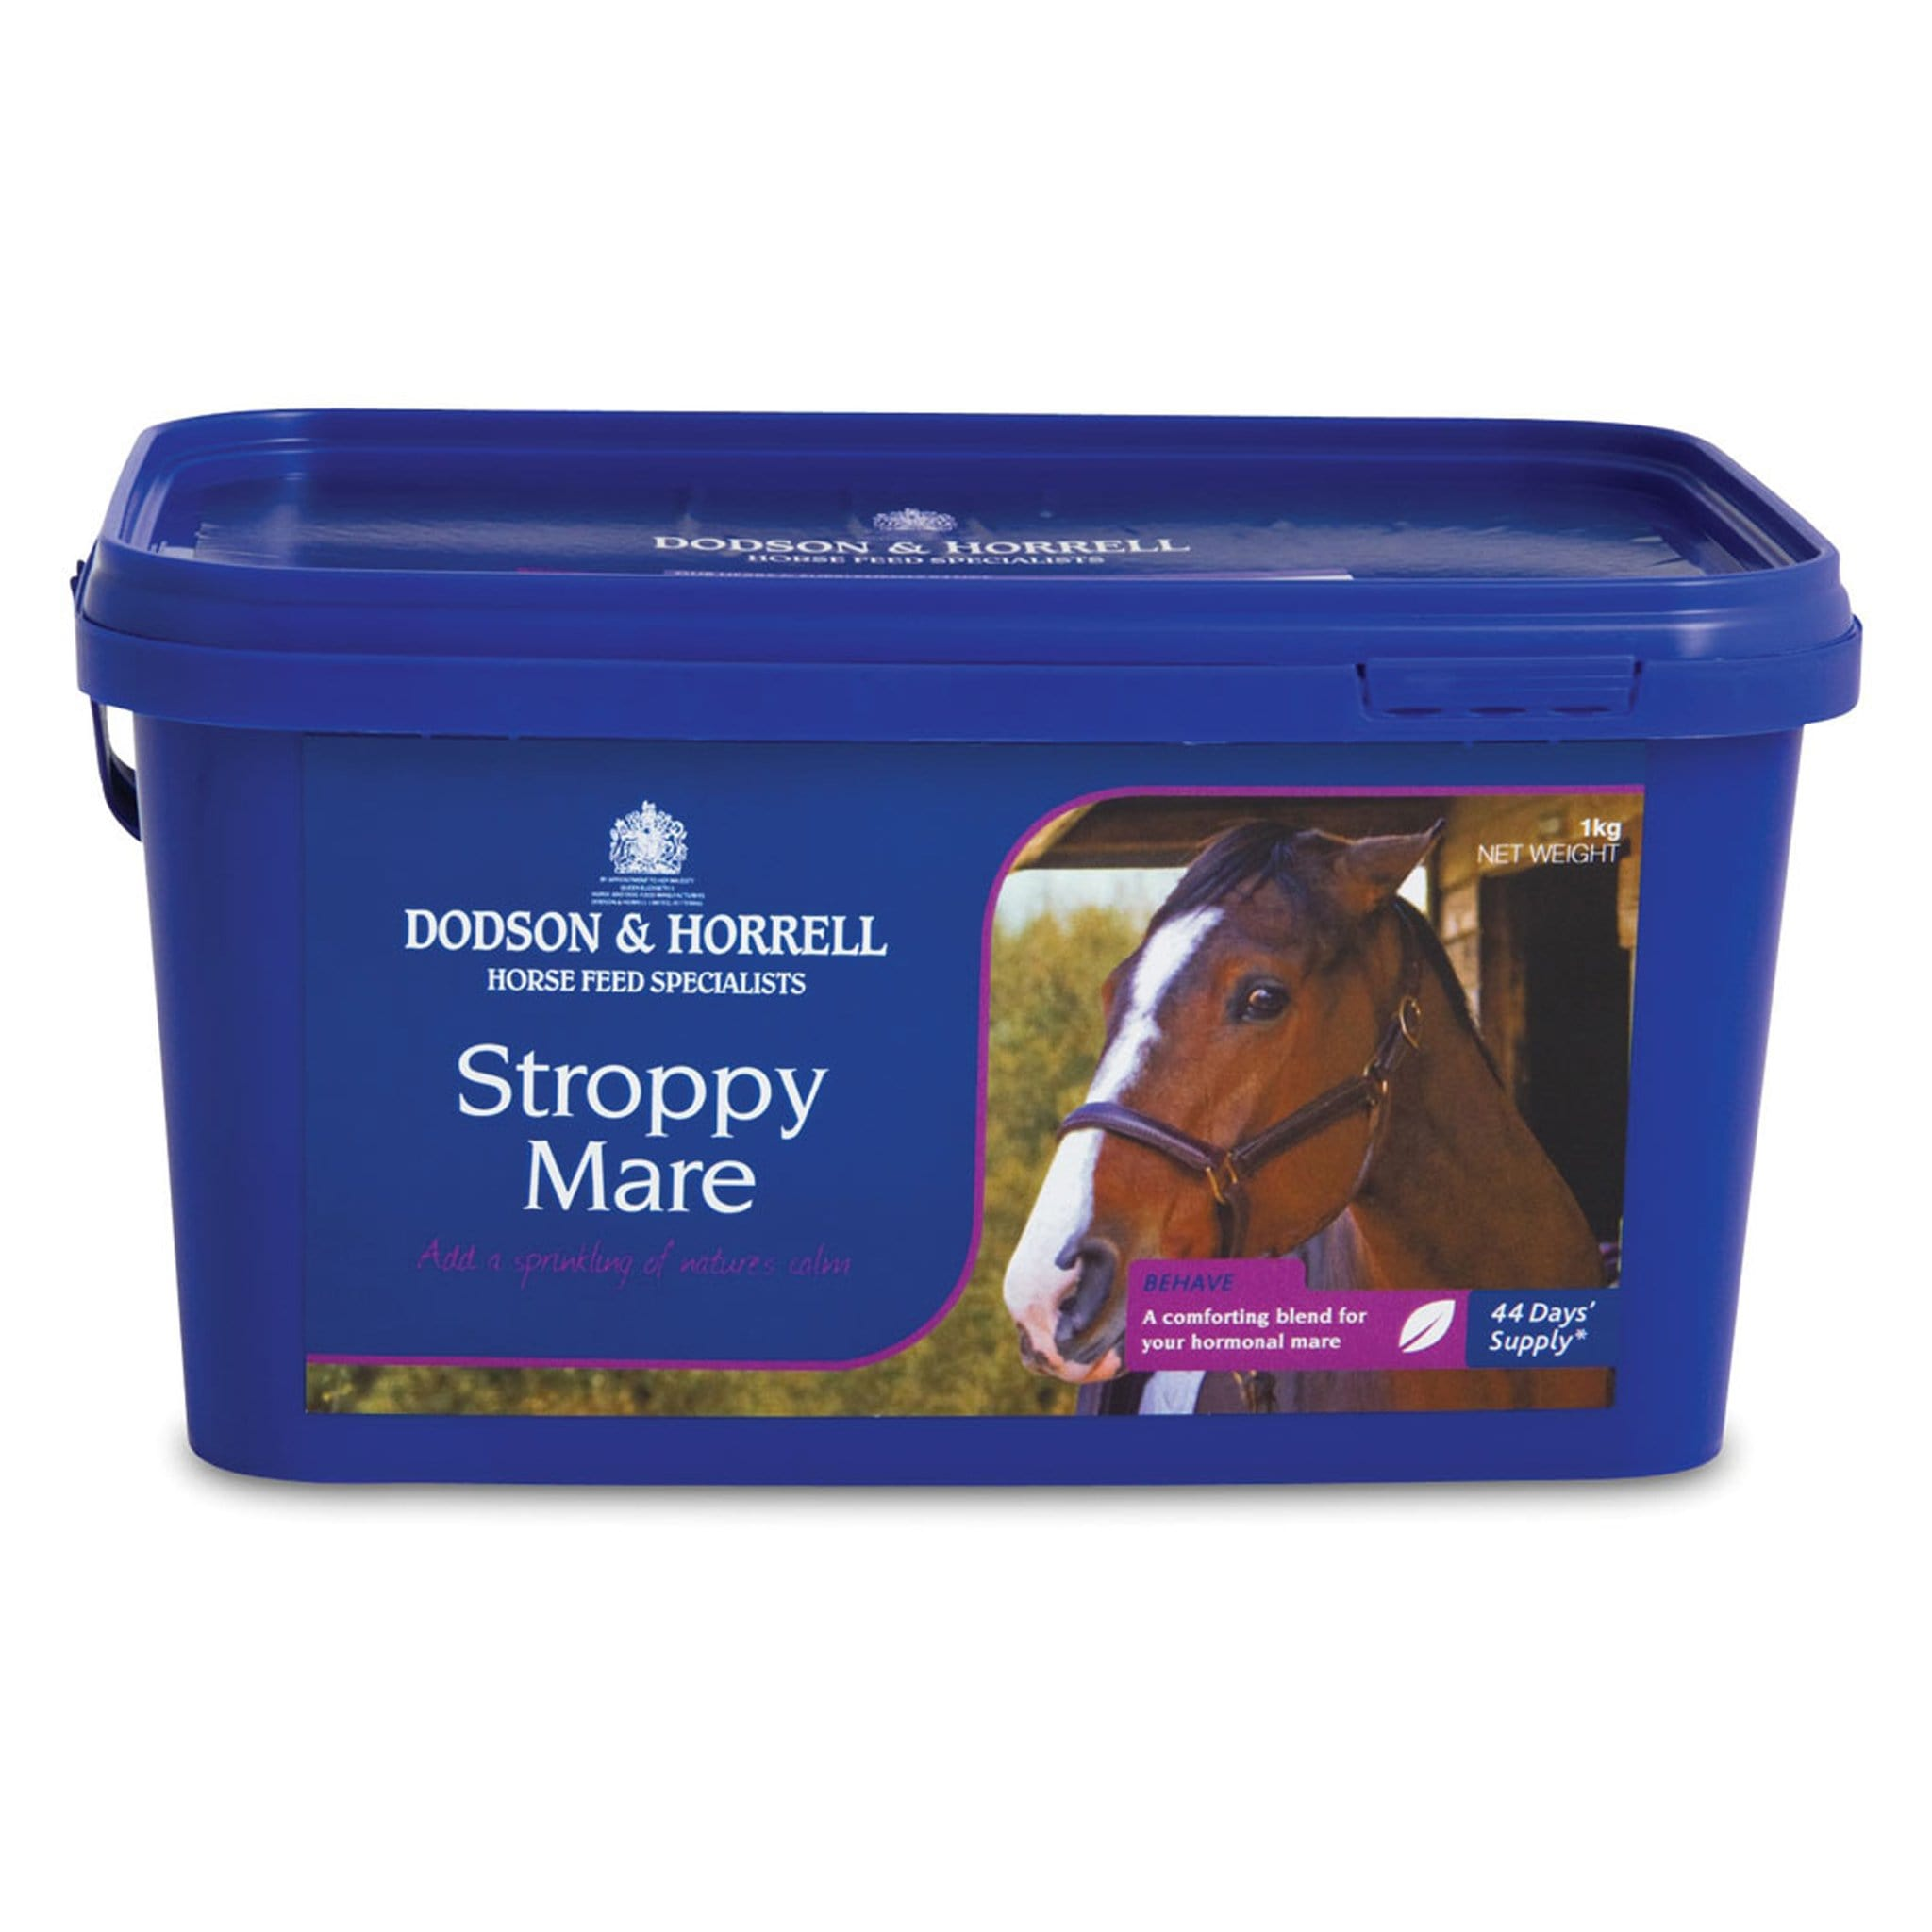 Dodson and Horrell Stroppy Mare 10790